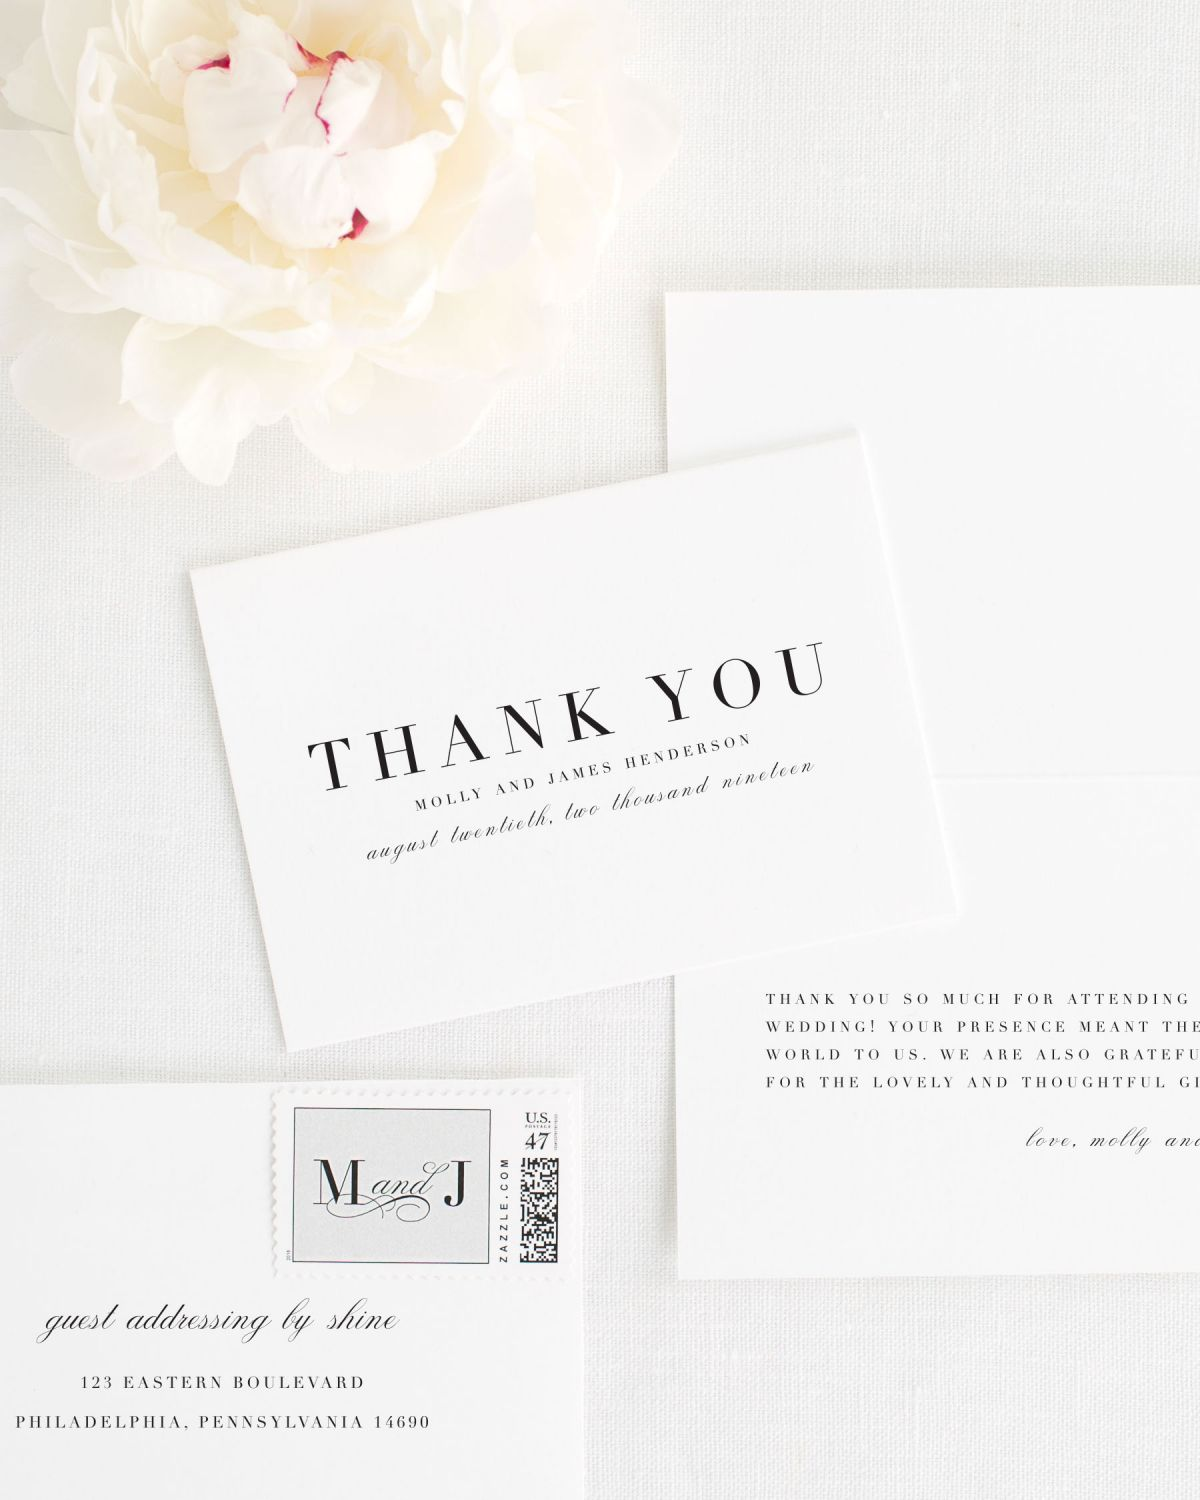 Amelia Thank You Cards for Weddings